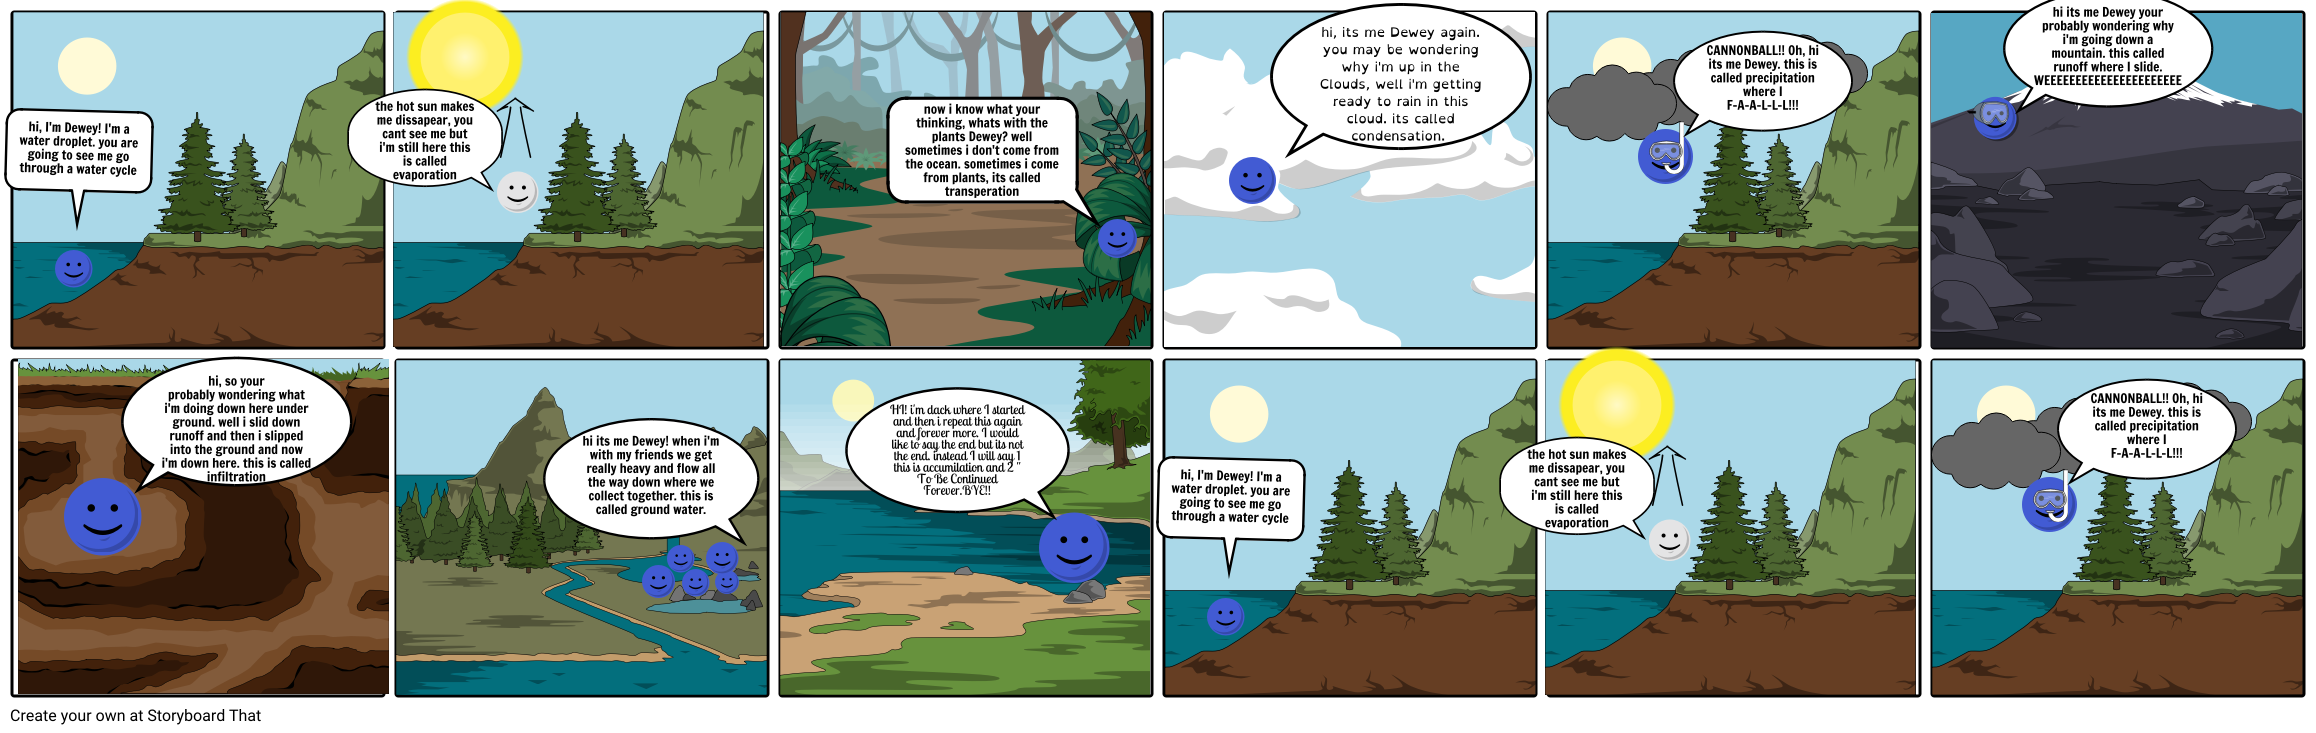 water cycle comic or WCC